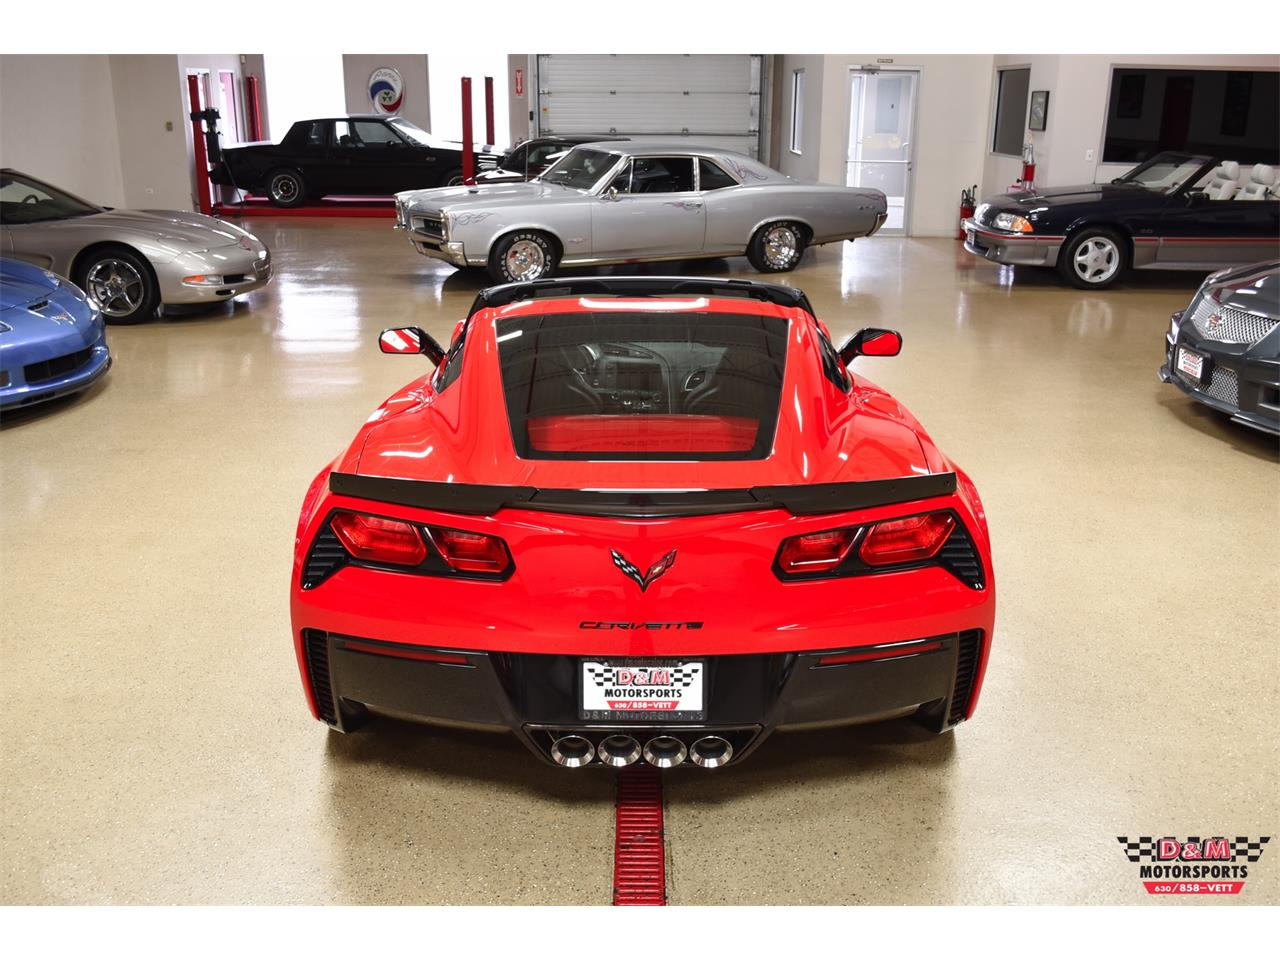 Large Picture of '18 Chevrolet Corvette located in Glen Ellyn Illinois - $61,995.00 Offered by D & M Motorsports - PWM3